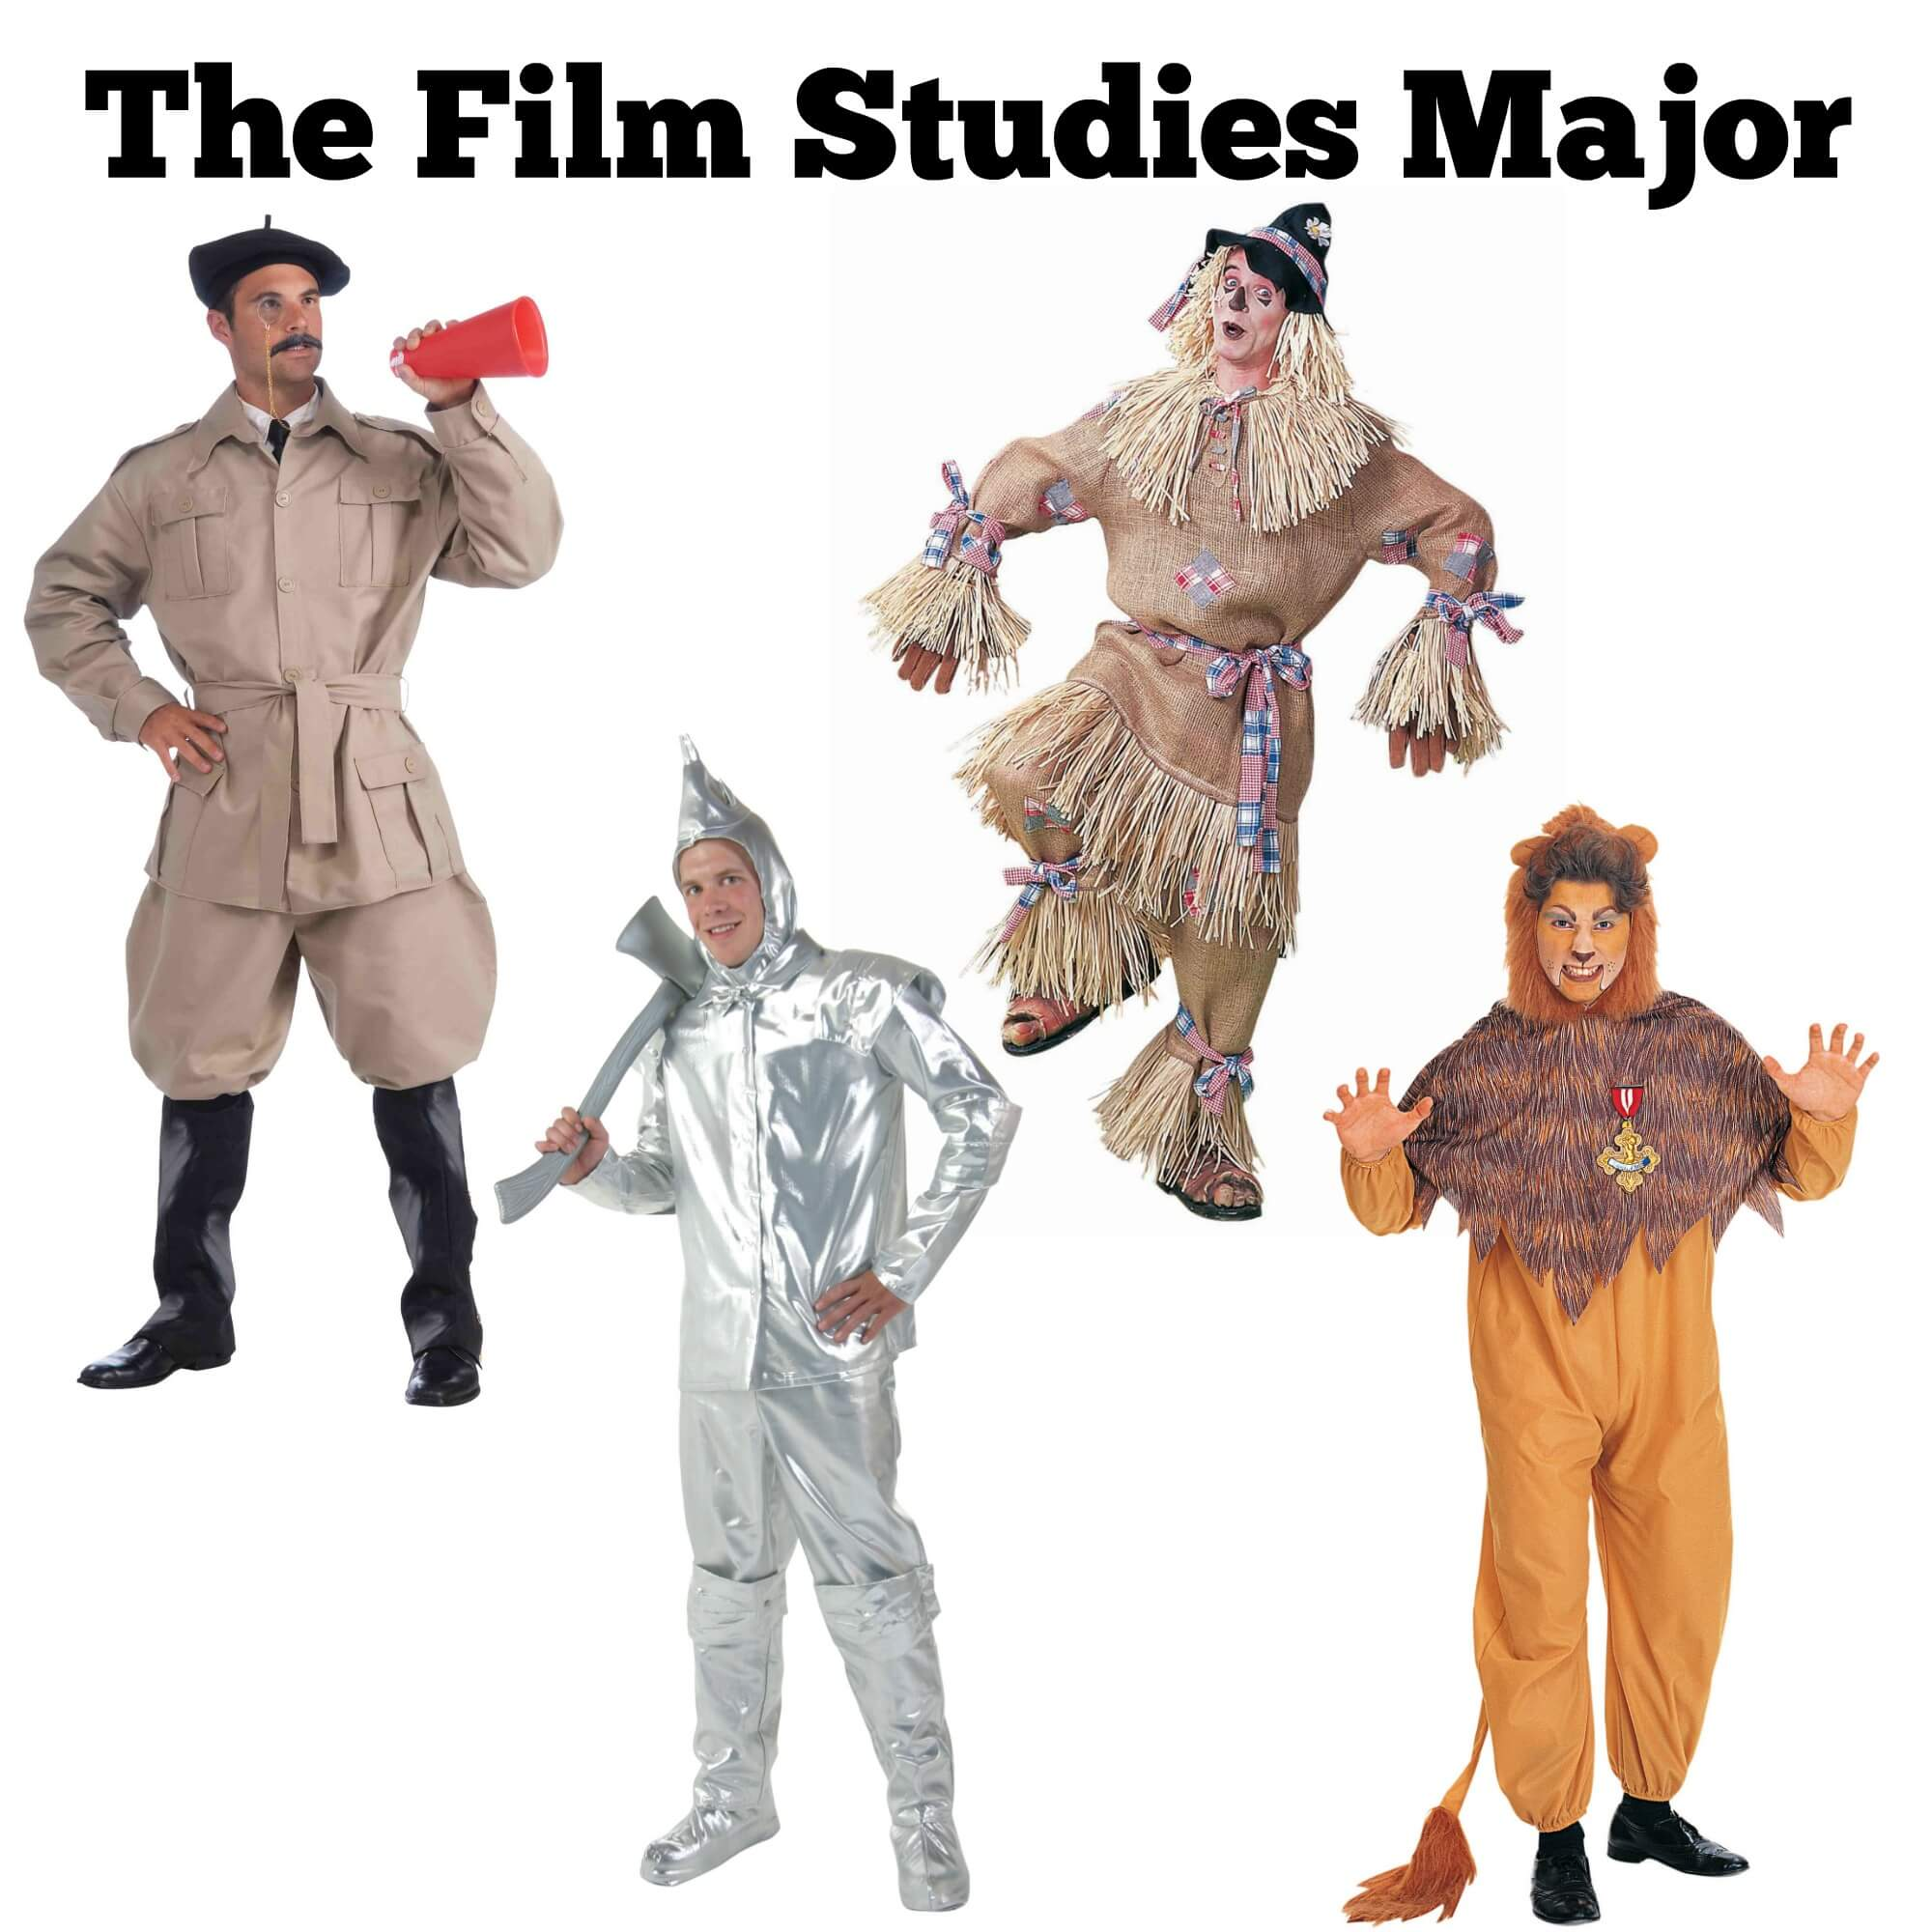 Halloween costume ideas for the Film Studies major